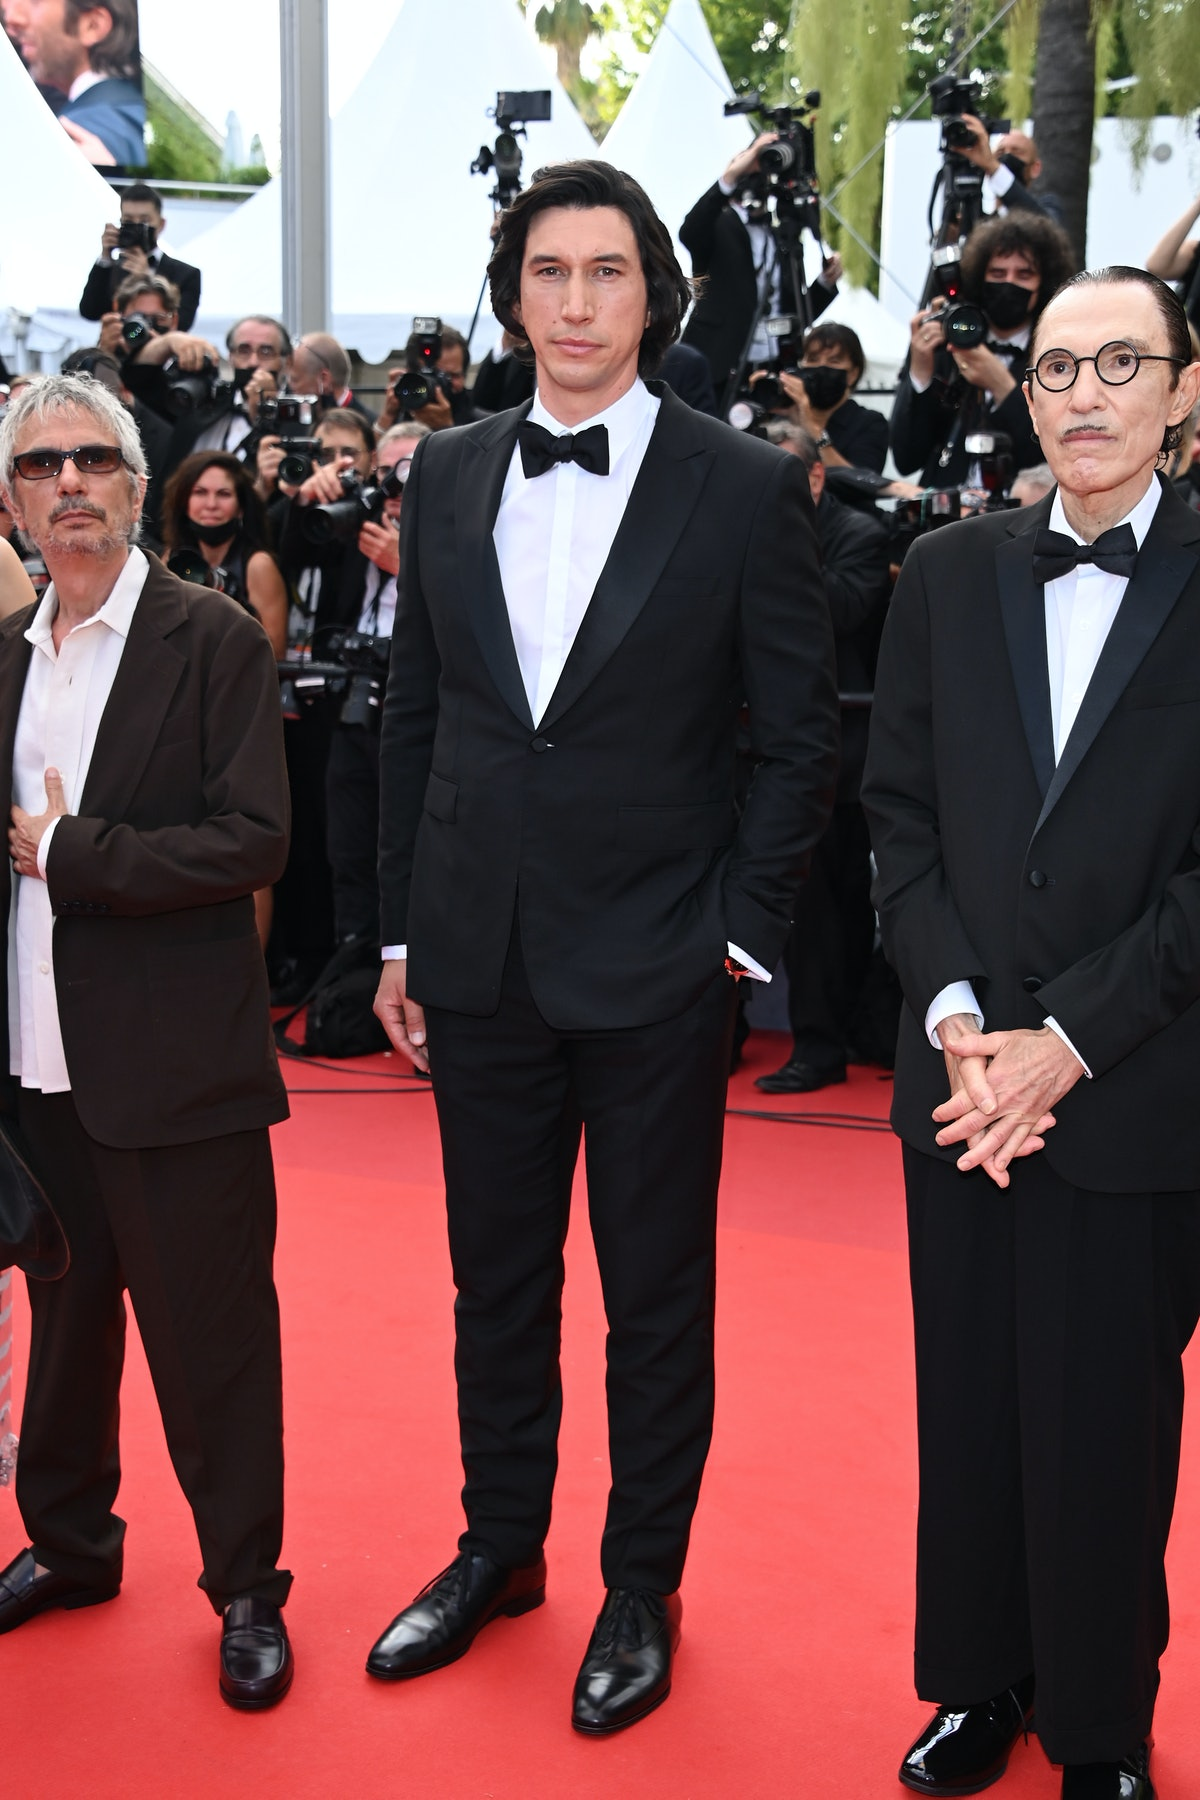 """CANNES, FRANCE - JULY 06: Adam Driver, Director Leos Carax and Ron Mael attend the """"Annette"""" screening and opening ceremony during the 74th annual Cannes Film Festival on July 06, 2021 in Cannes, France. (Photo by Daniele Venturelli/WireImage)"""